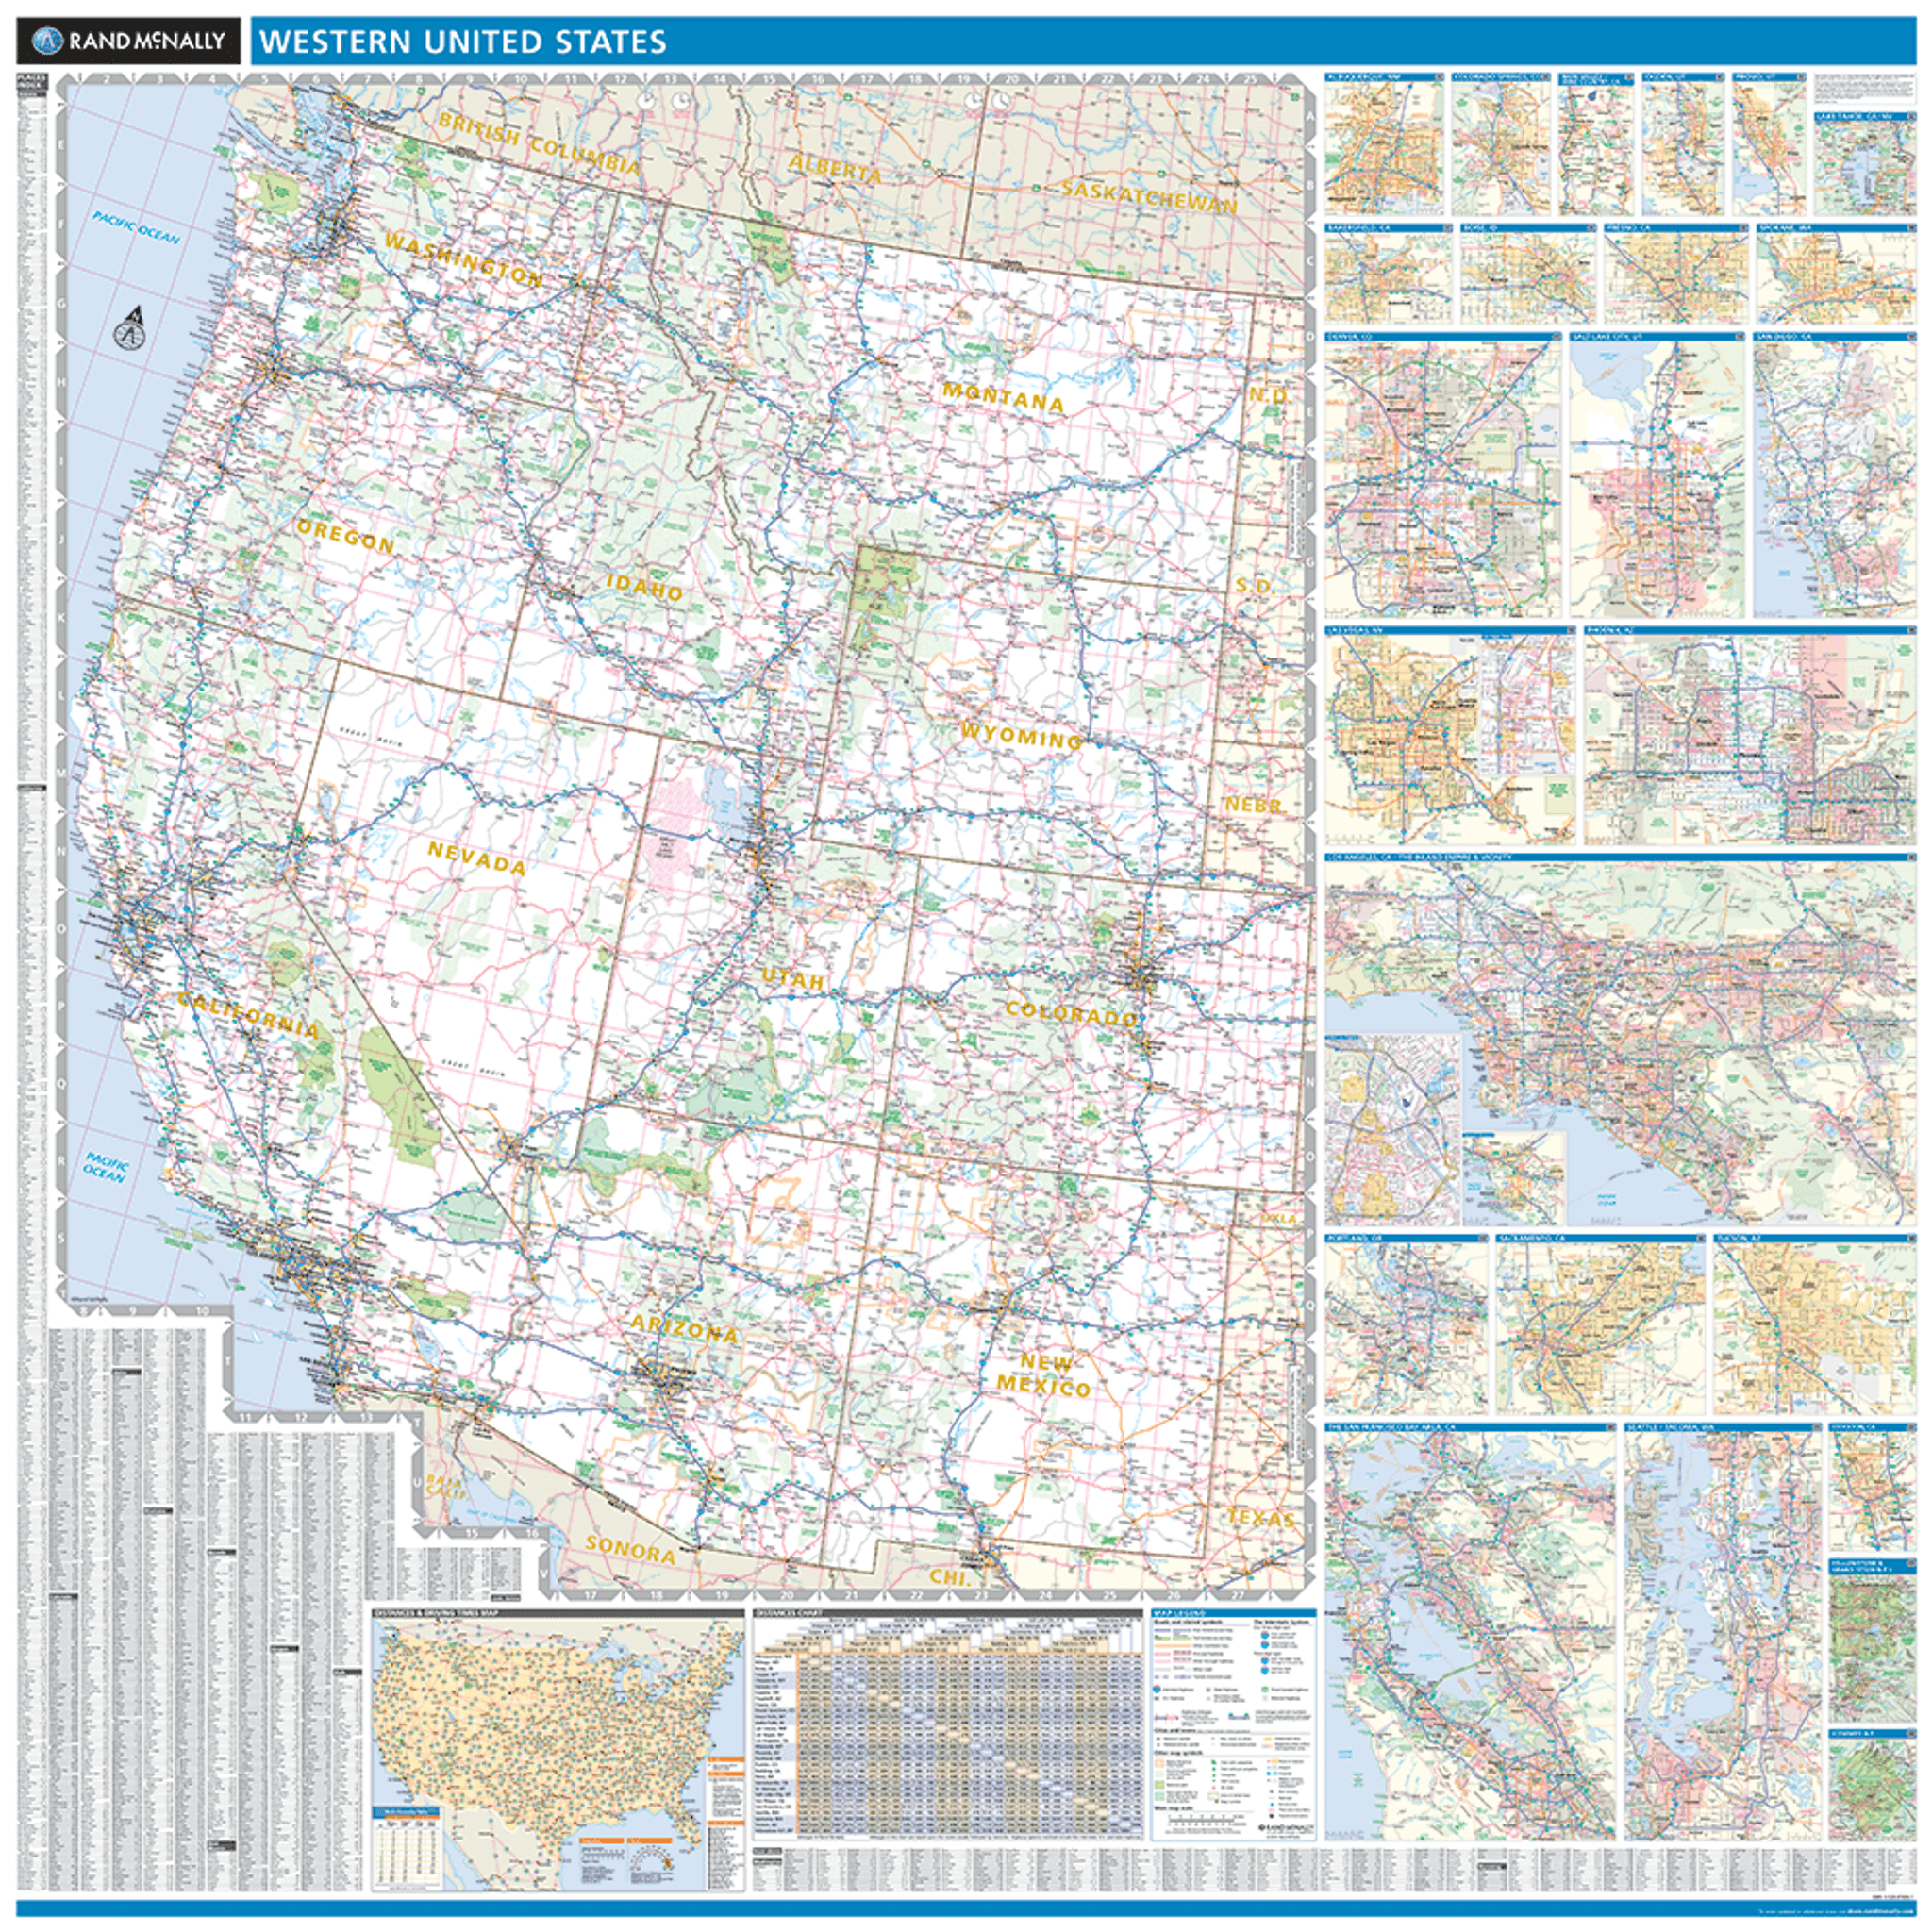 ProSeries Wall Map: Western United States